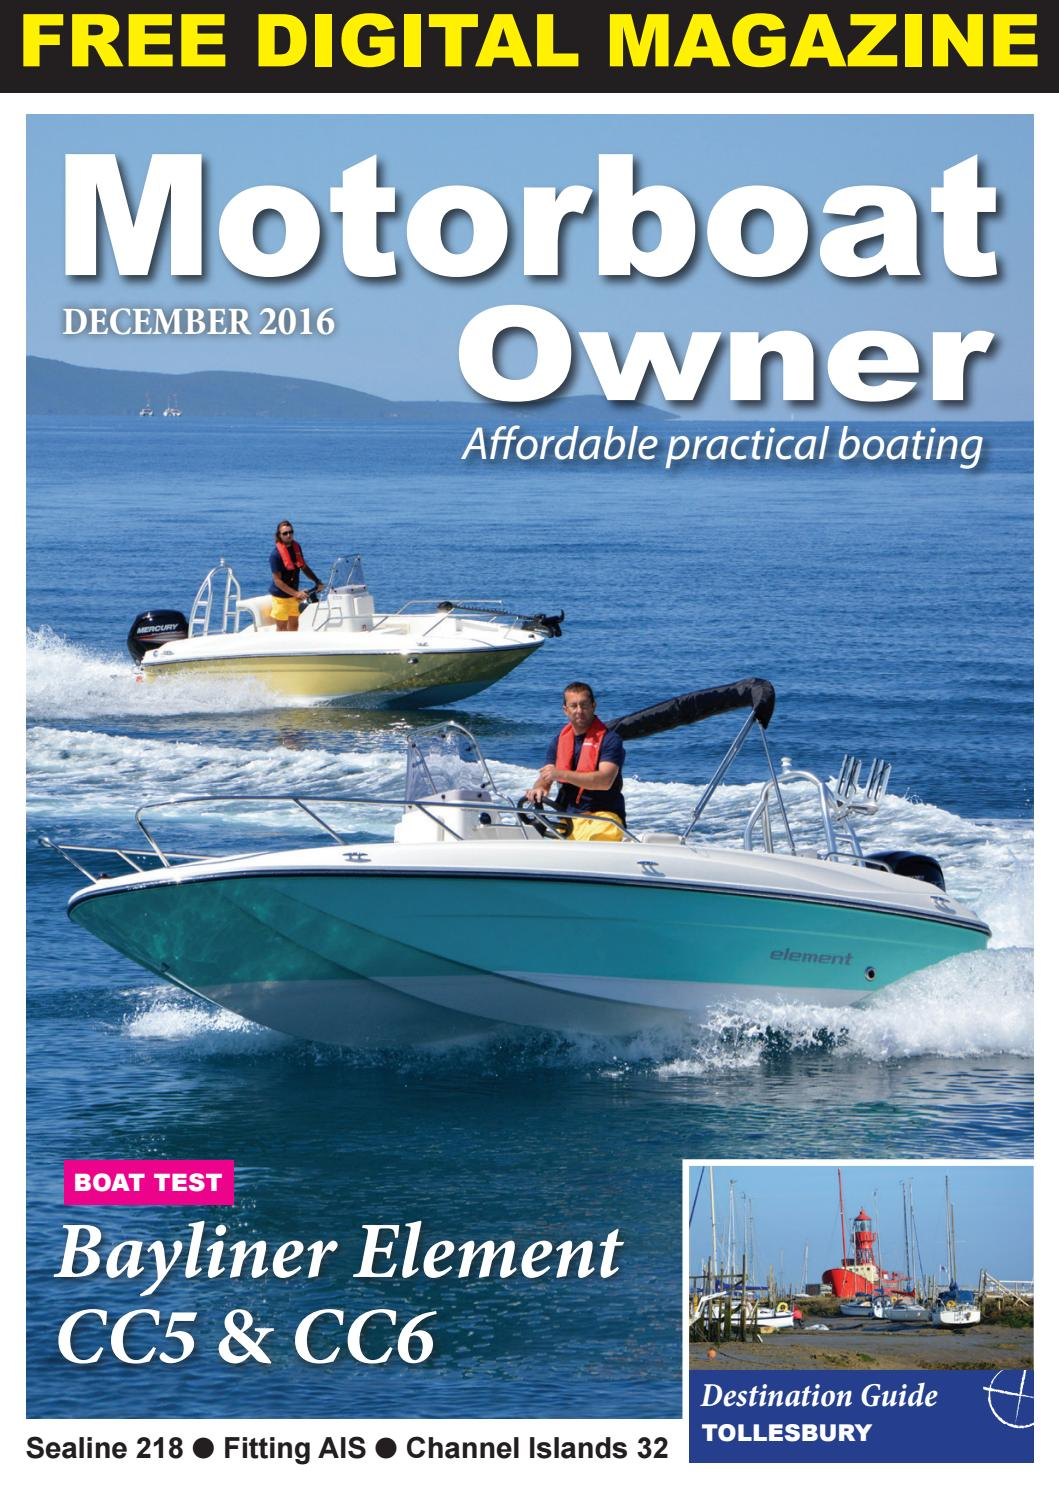 Motorboat Owner December 2016 by Digital Marine Media Ltd